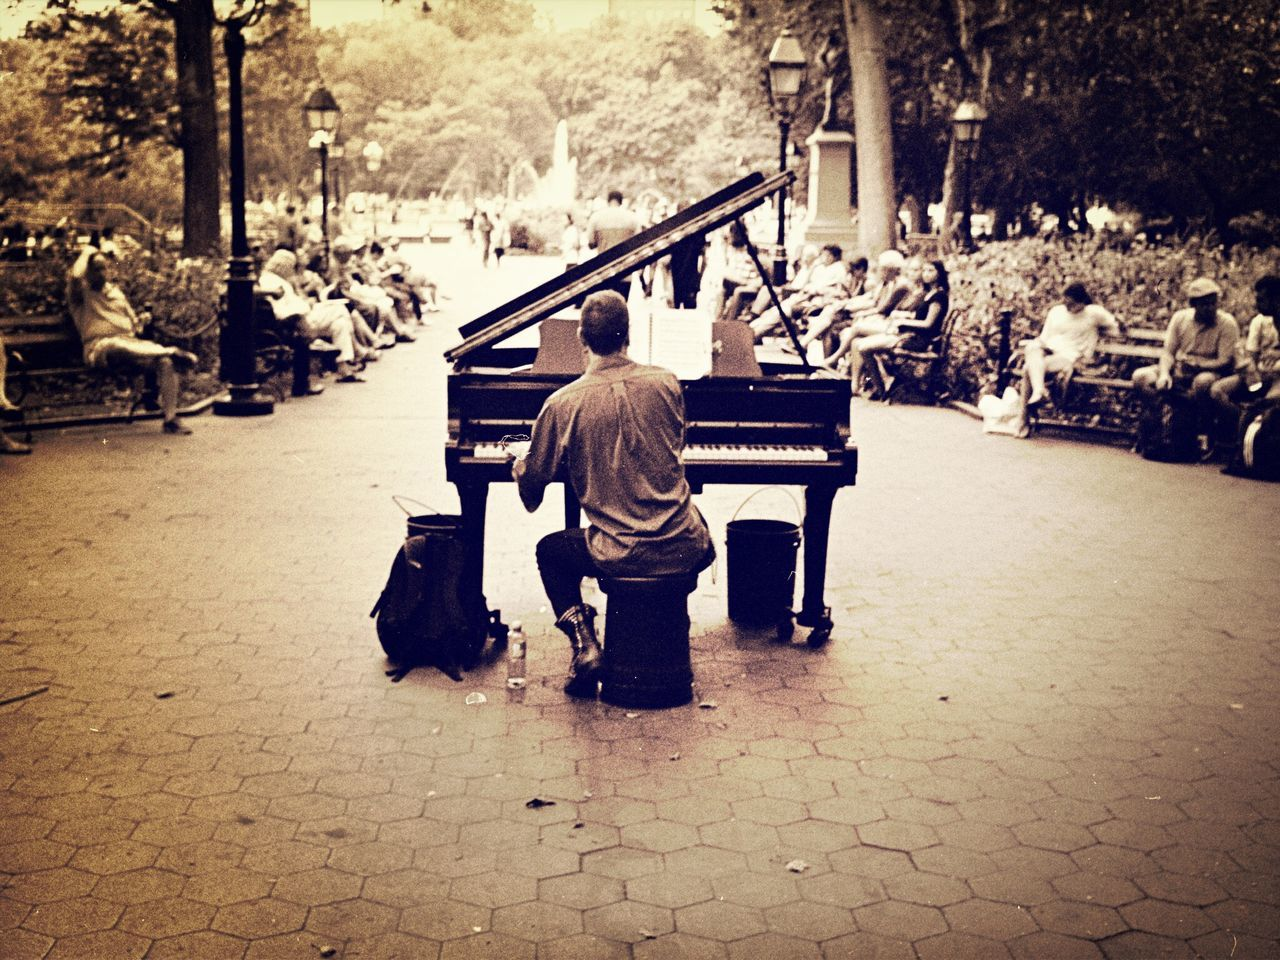 real people, musical instrument, music, men, lifestyles, musician, playing, large group of people, day, sitting, full length, outdoors, adult, people